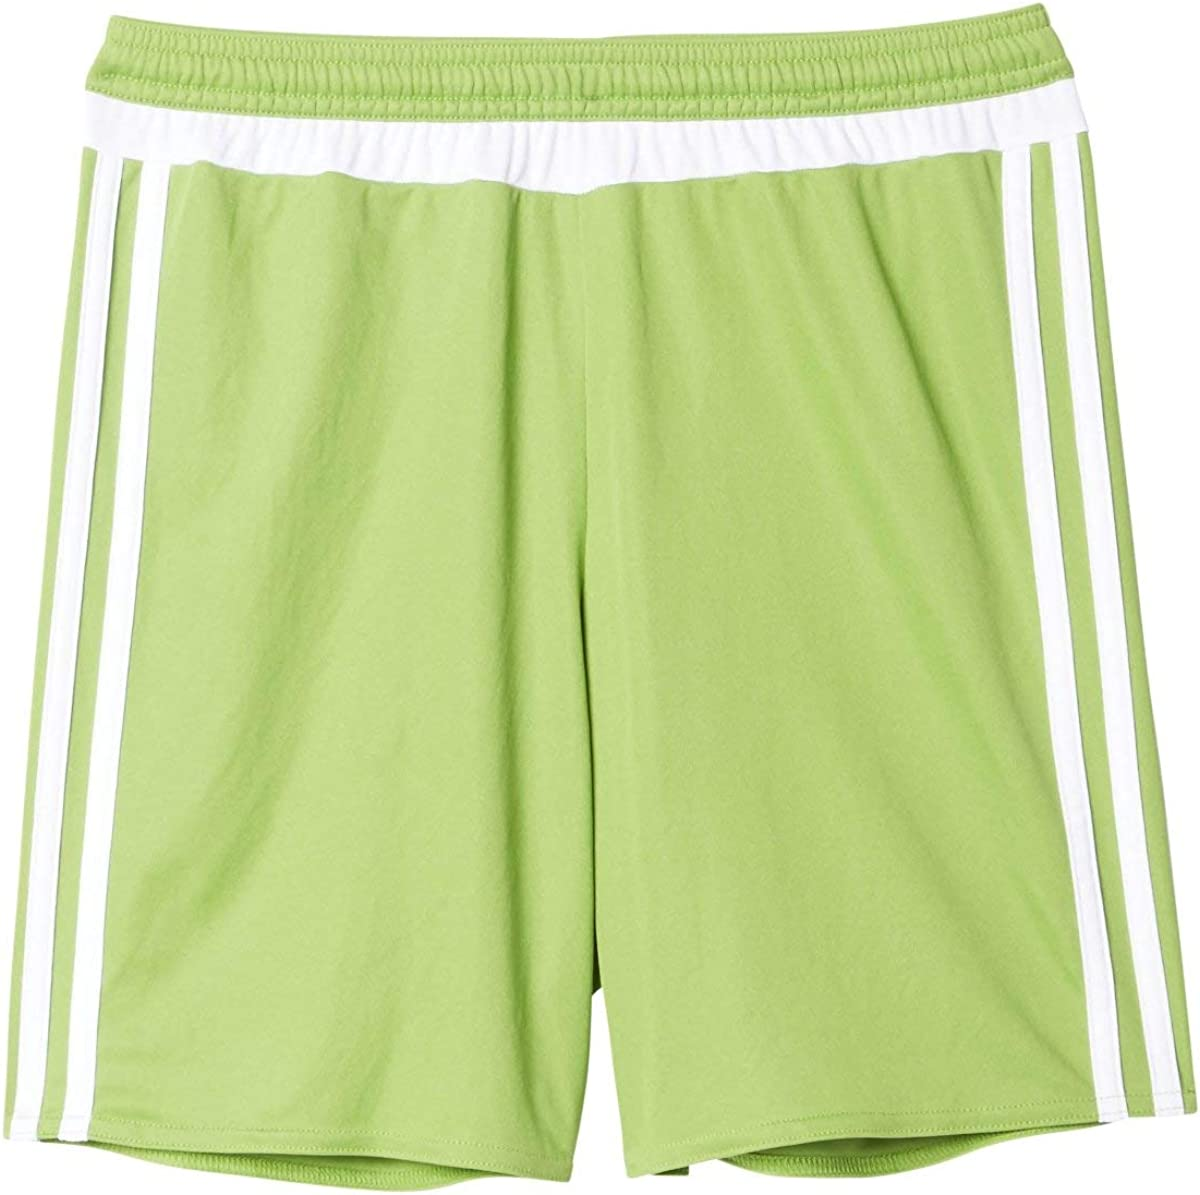 adidas Max 47% OFF MLS 15 Match Youth Soccer OFFicial store Short